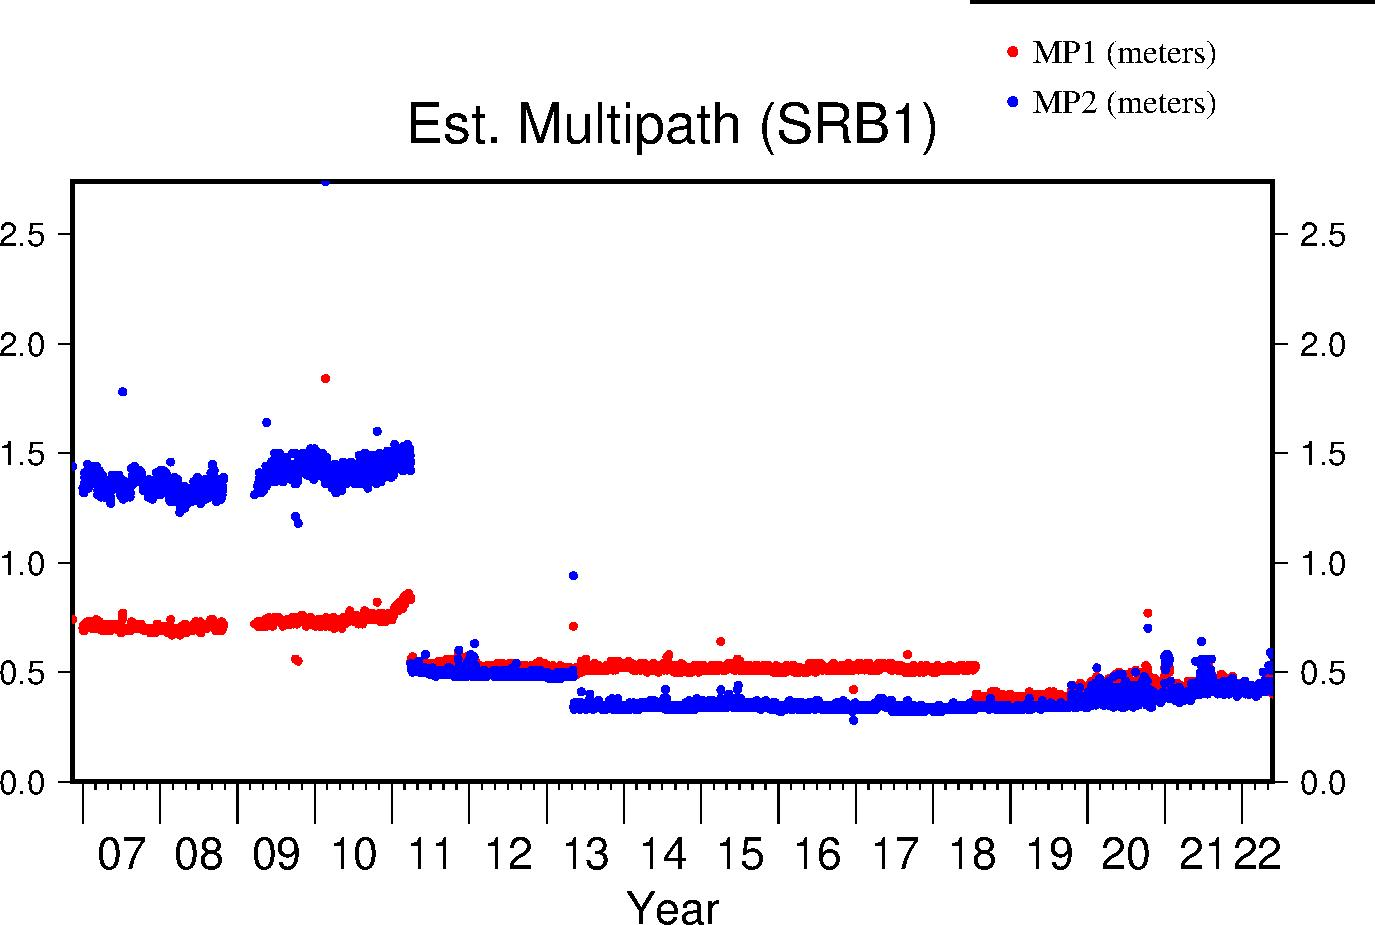 SRB1 multipath lifetime